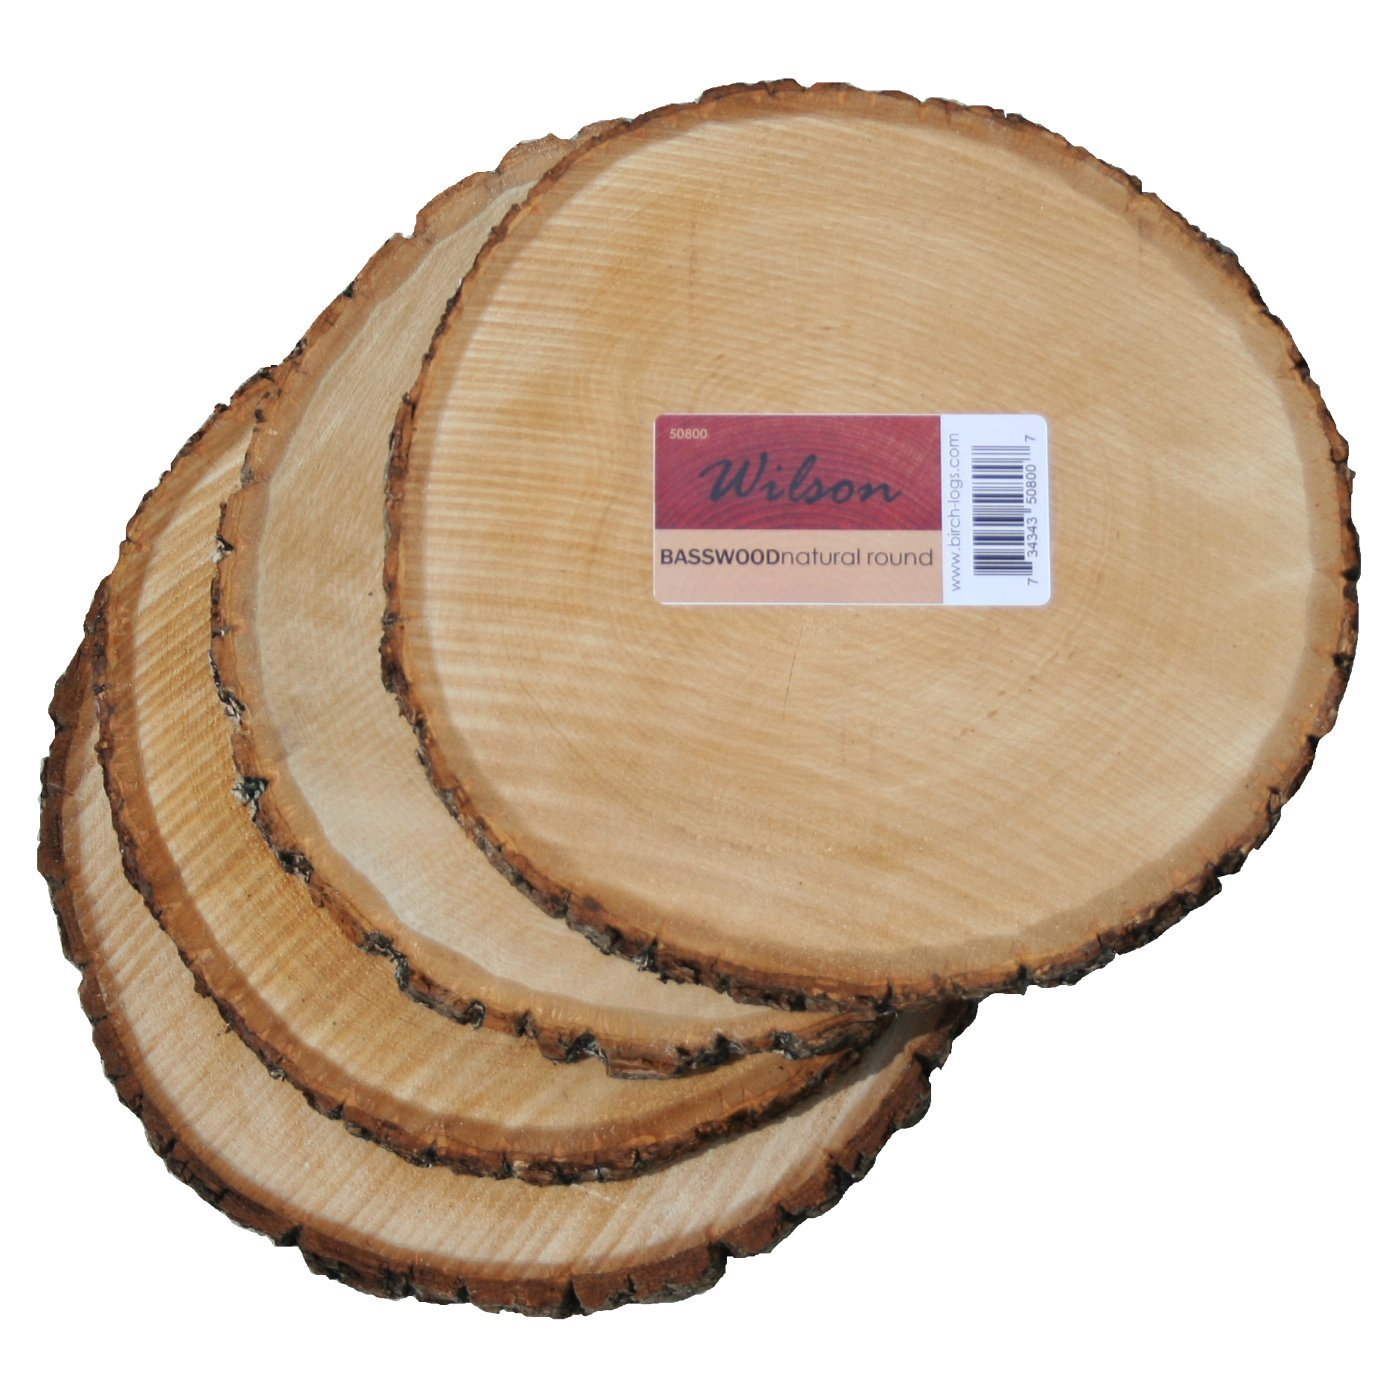 Wilson Enterprises 4 Pack Basswood Round Rustic Wood, Unsanded, 9-11'' Diameter (Large) Excellent for Wedding Centerpiece, DIY Woodland Projects, Table Chargers, or Country Decor